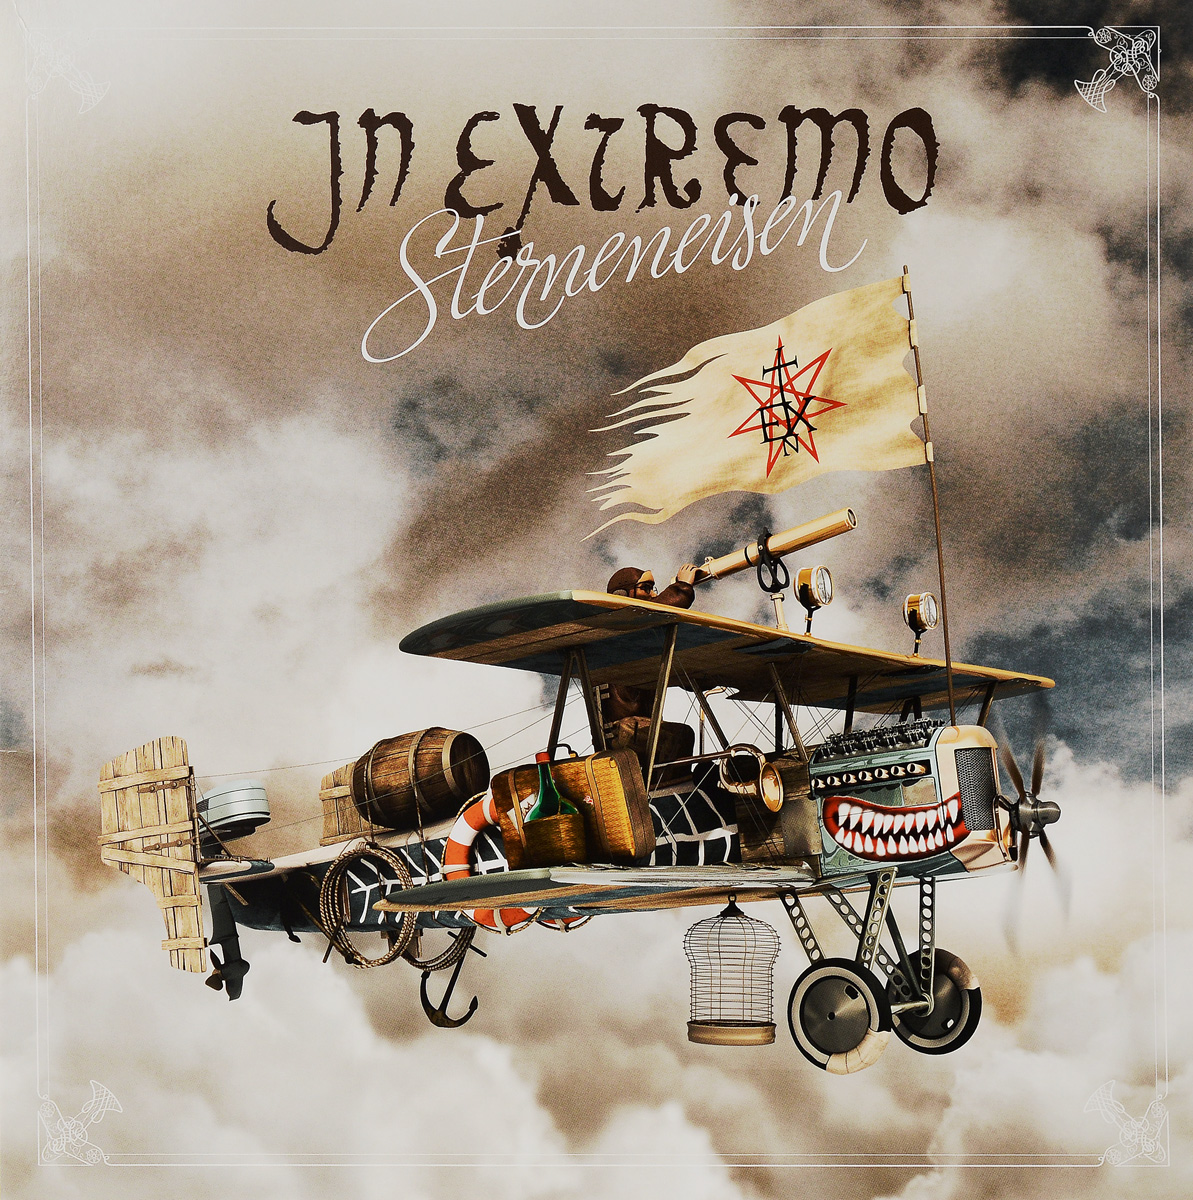 In Extremo In Extremo. Sterneneisen (LP) in extremo in extremo vinyl collection 8 lp